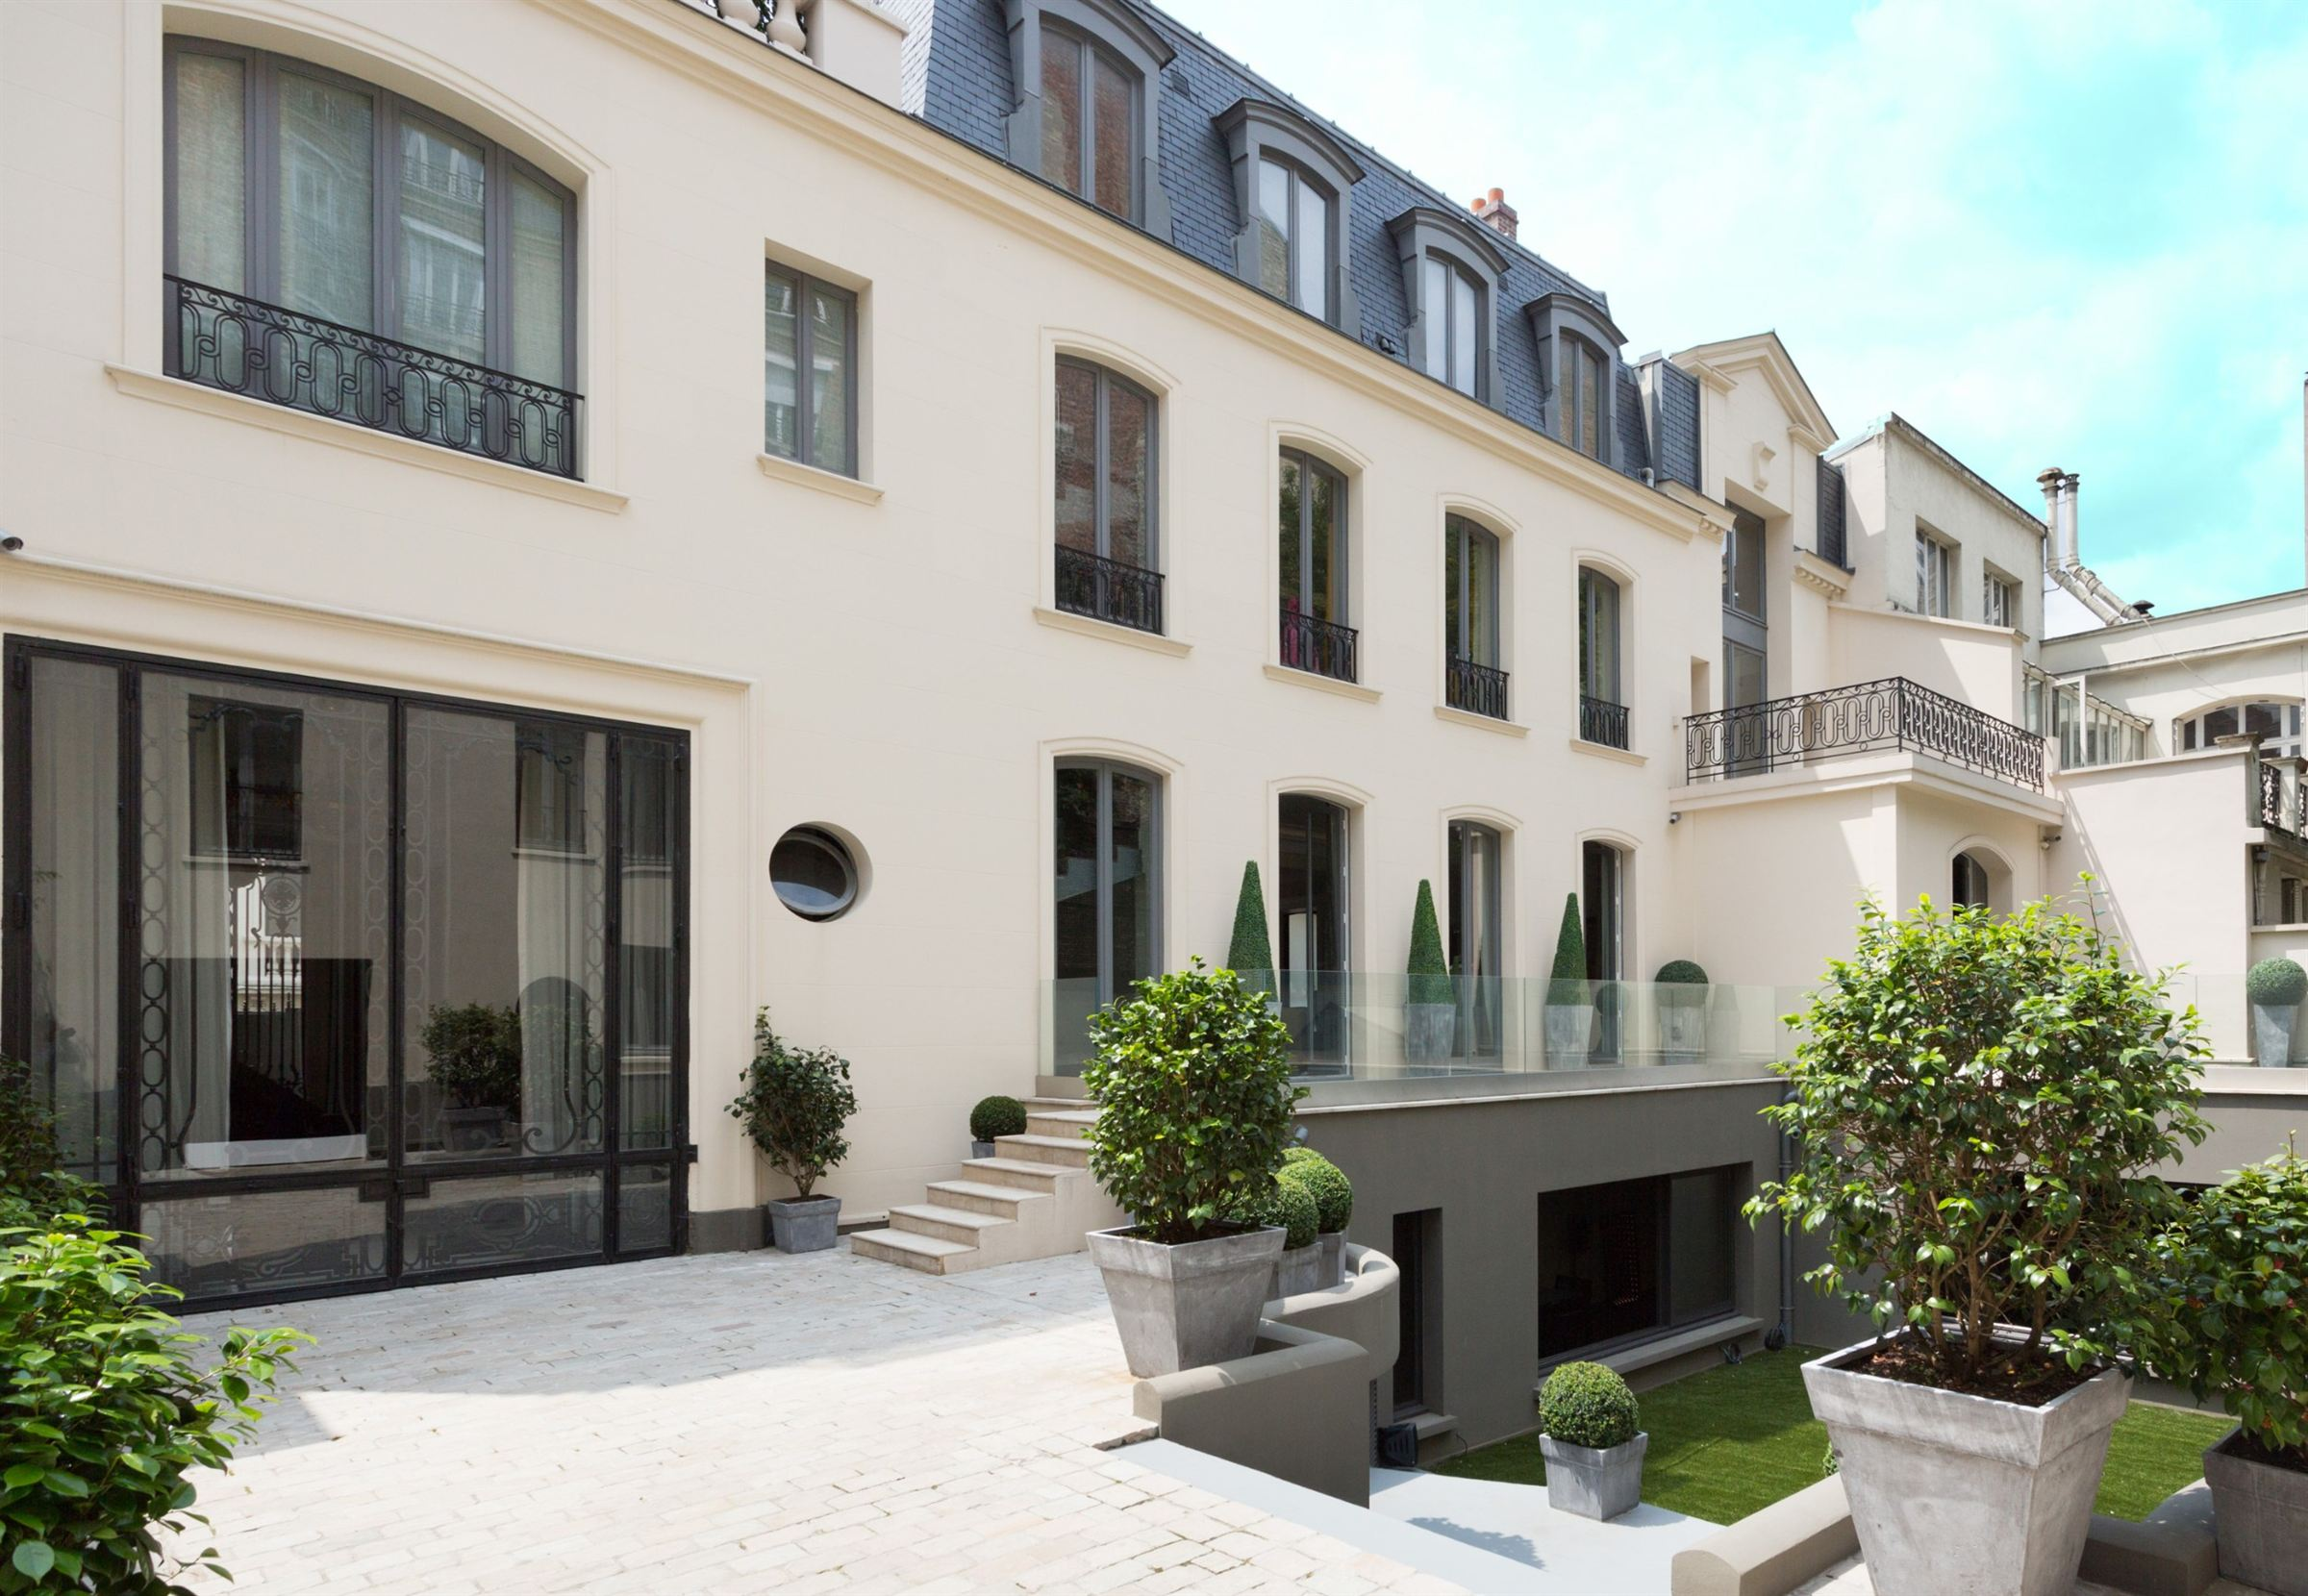 Tek Ailelik Ev için Satış at Paris 16 - Prestigious Mansion of 1100 sq.m + 400 sq.m garden Paris, Paris 75016 Fransa